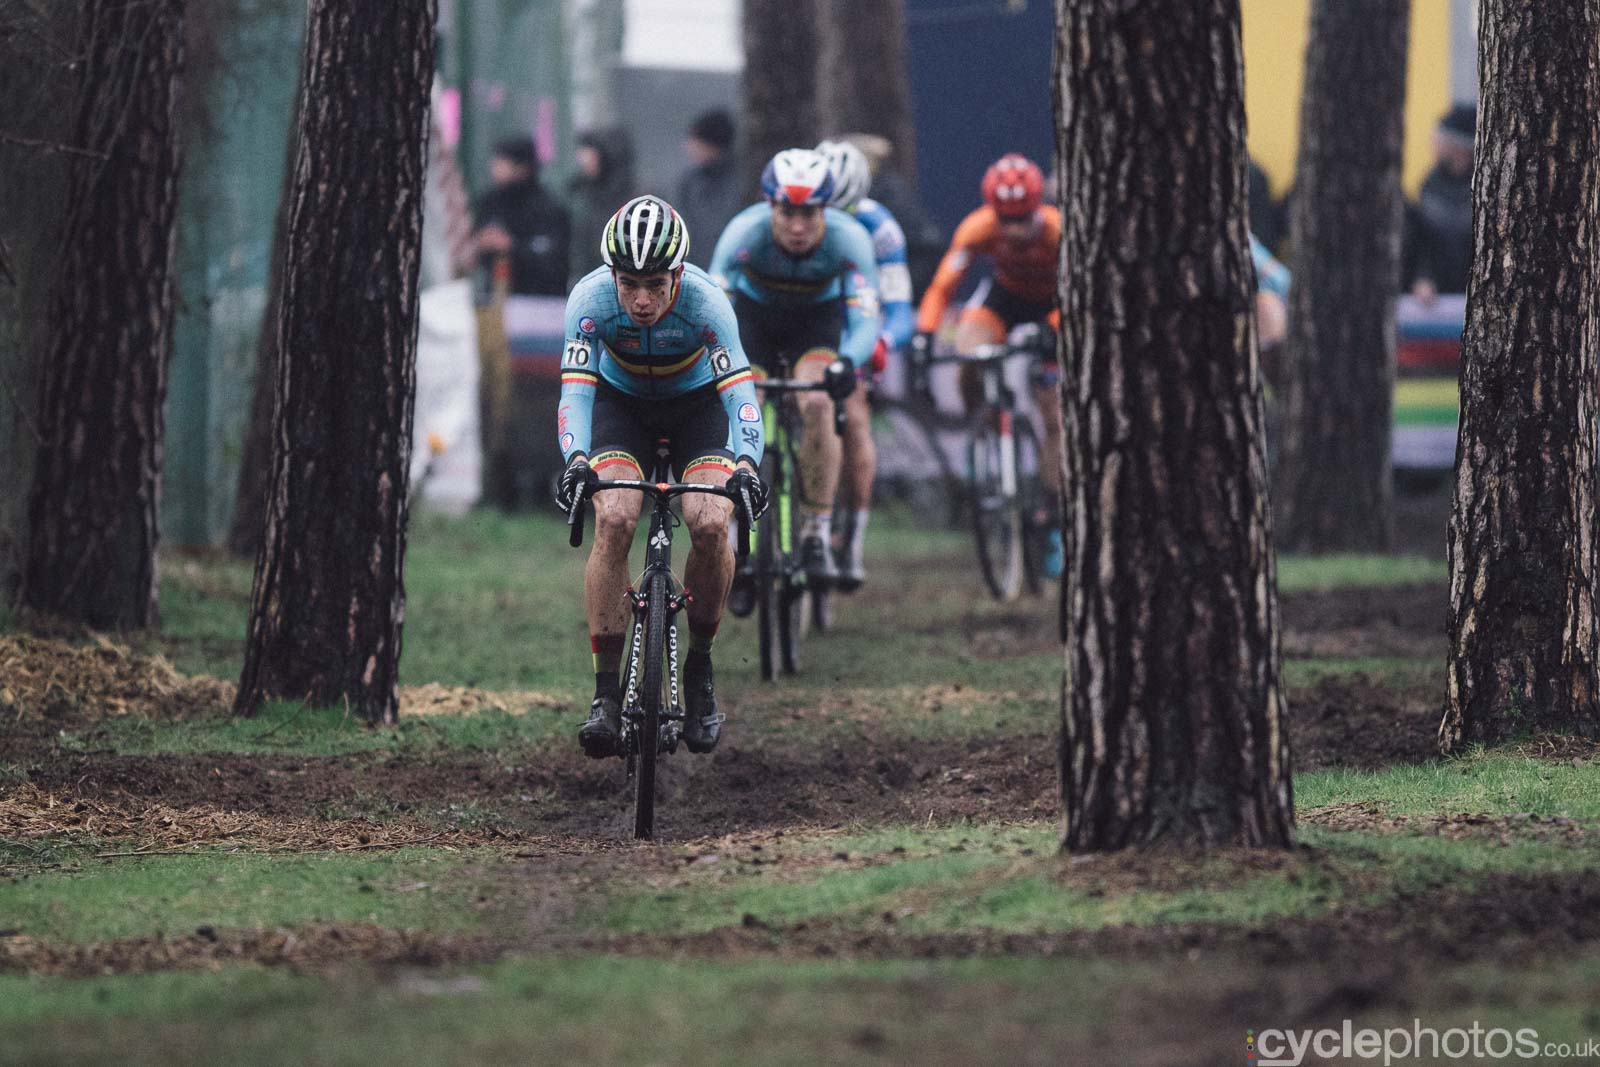 2016-cyclephotos-cyclocross-world-championships-zolder-145650-wout-van-aert